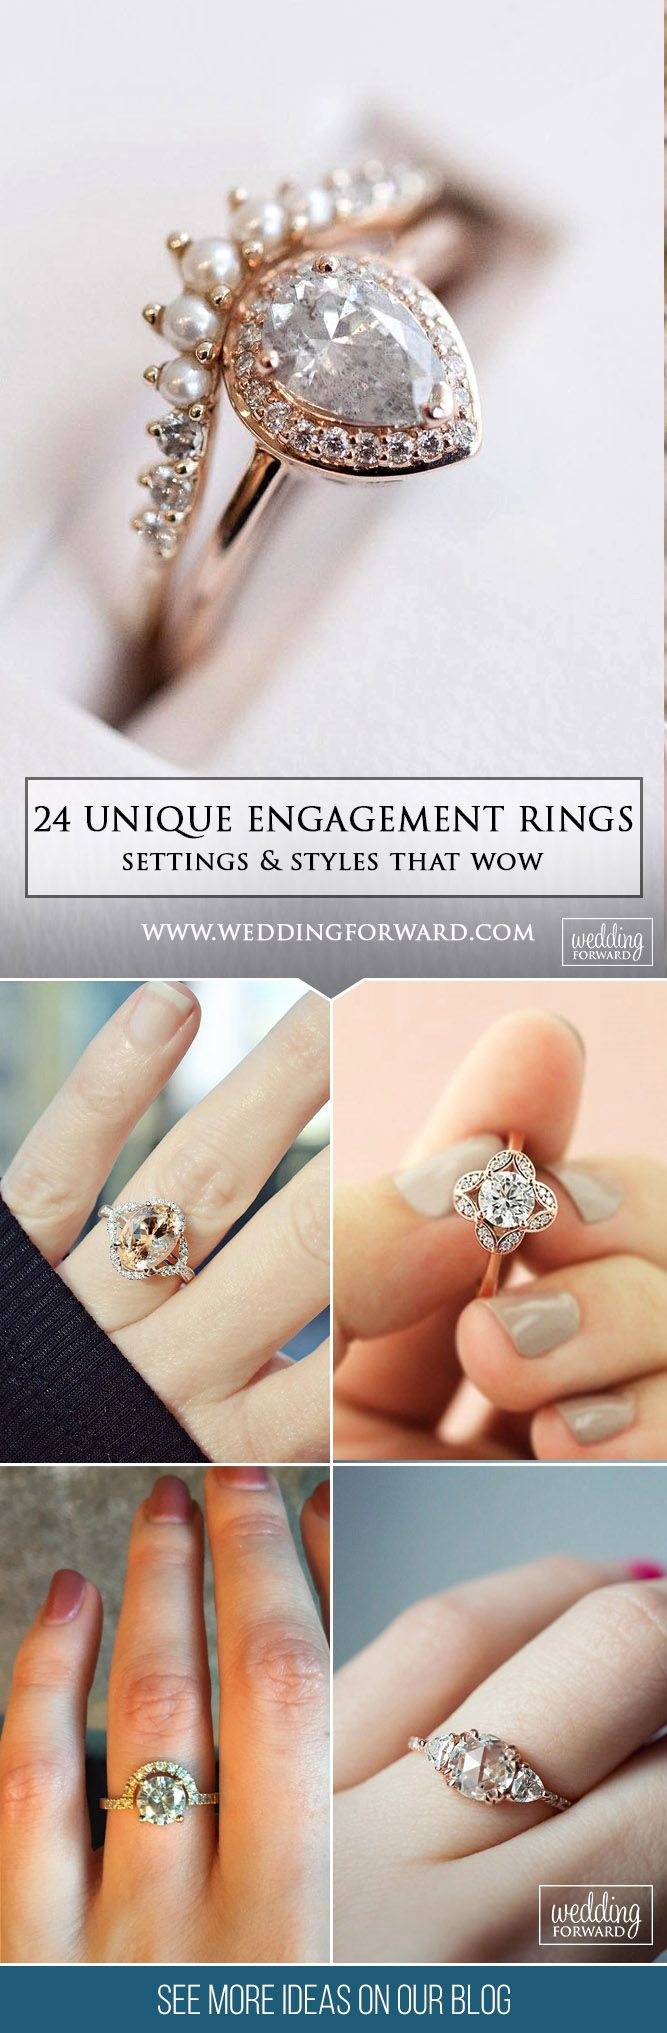 24 Unique Engagement Rings That Wow ❤ We've rounded up unique engagement rings in different settings and styles for your inspiration! See more: http://www.weddingforward.com/unique-engagement-rings/ #wedding #unique #engagement #rings